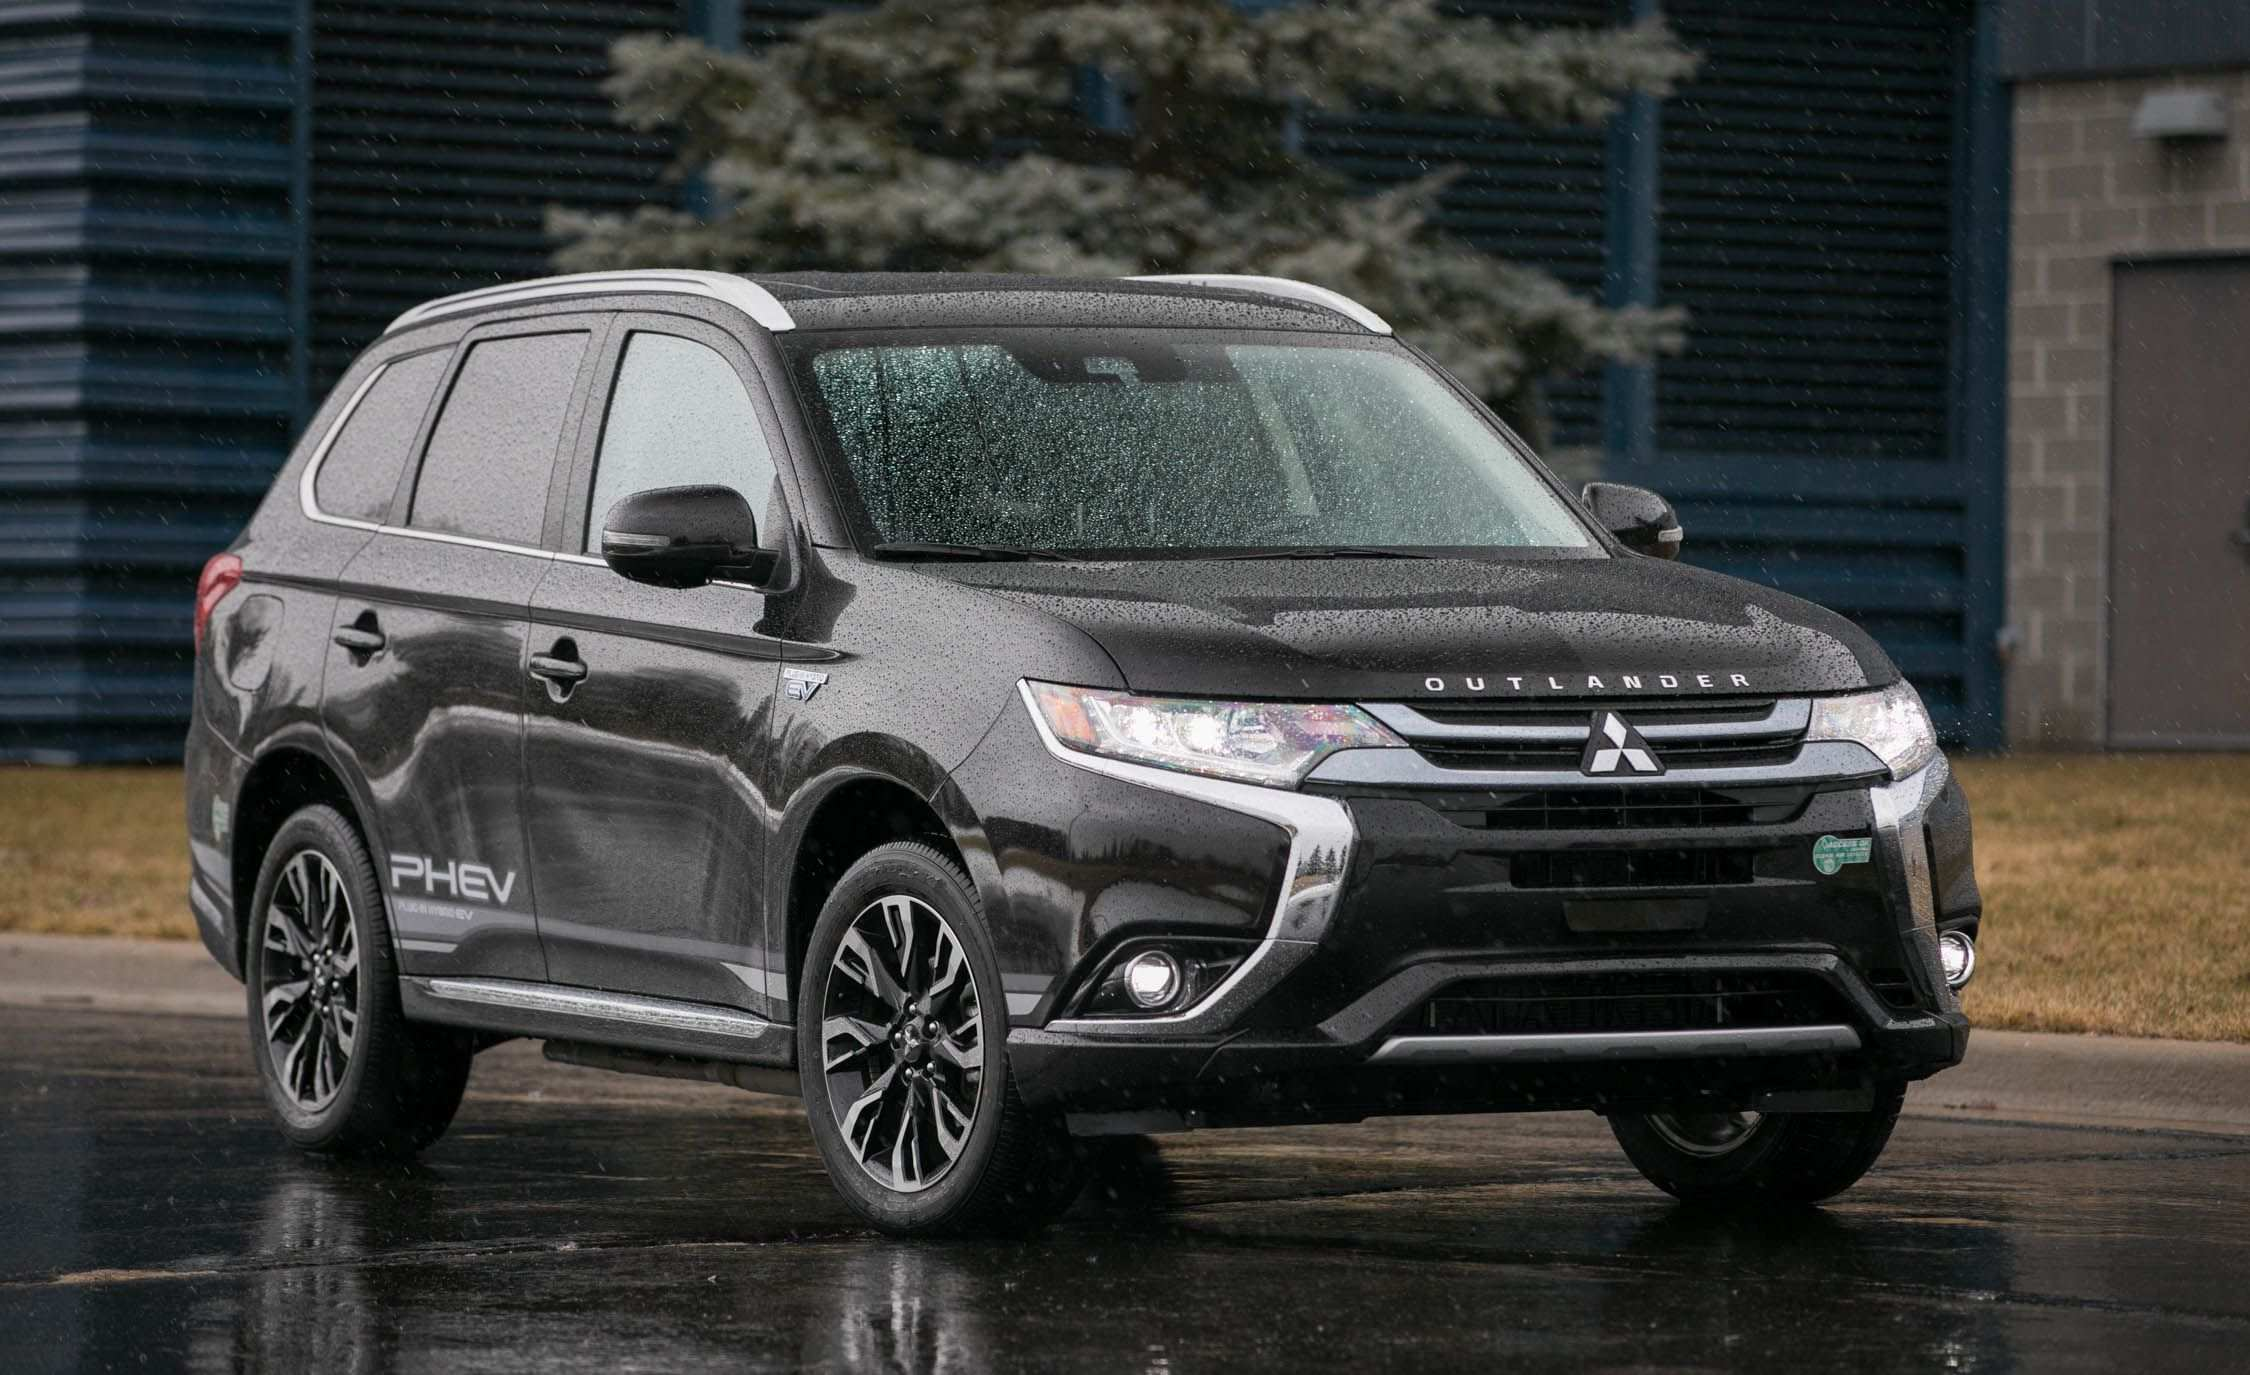 35 All New 2019 Mitsubishi Outlander Release Date